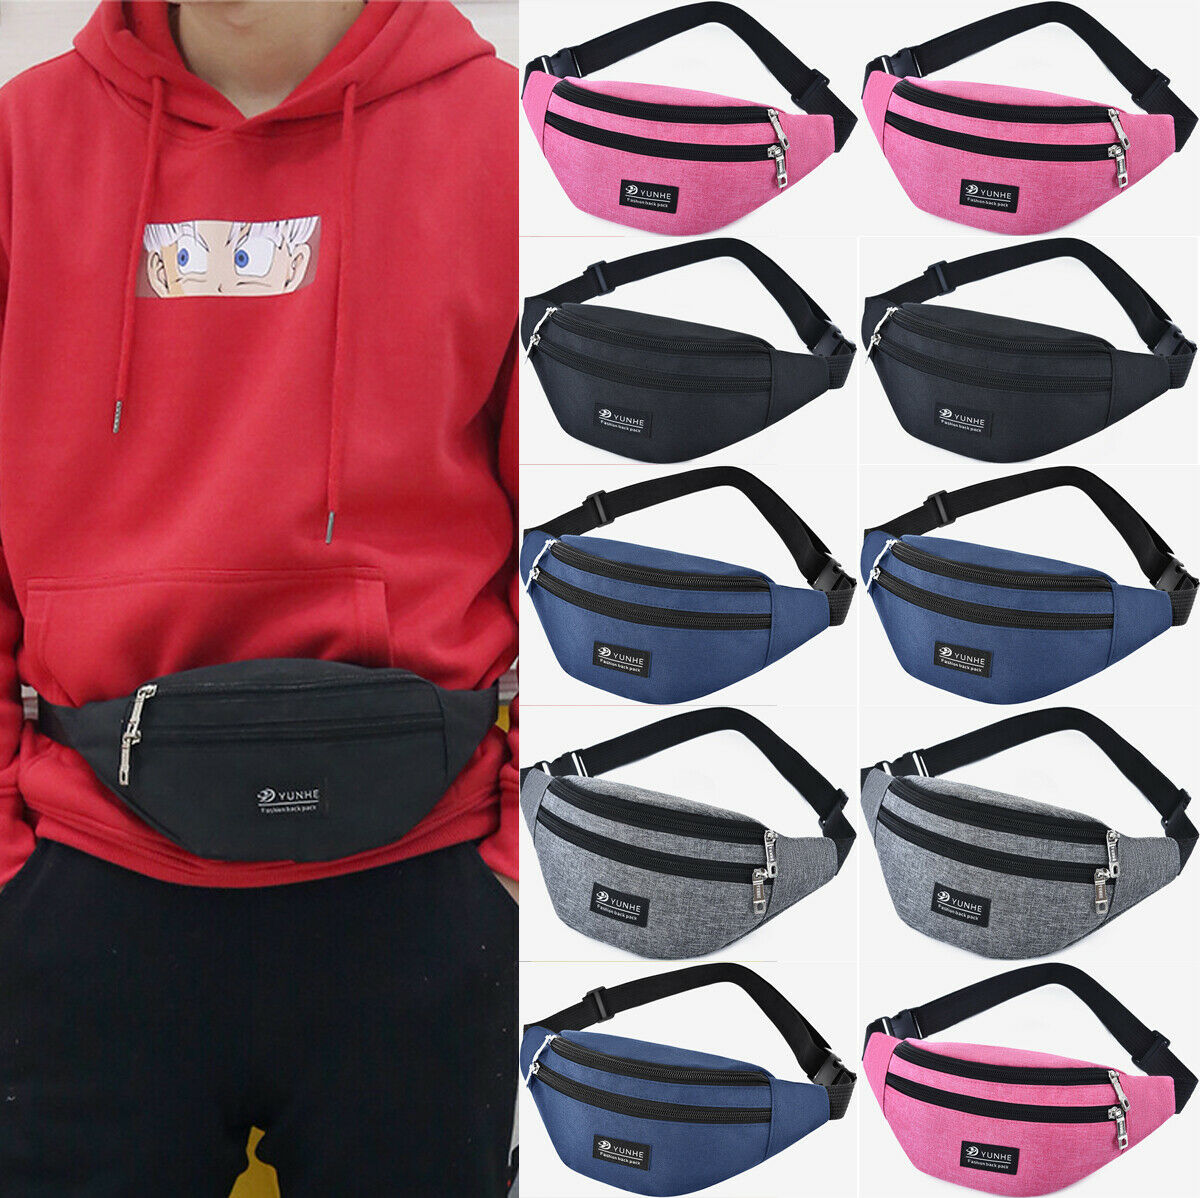 Men Women Sportswear Bum Bag Fanny Pack Travel Waist Money Belt Zip Hiking Pouch Wallet Waist Pack Hip Pack Running Travel Belt